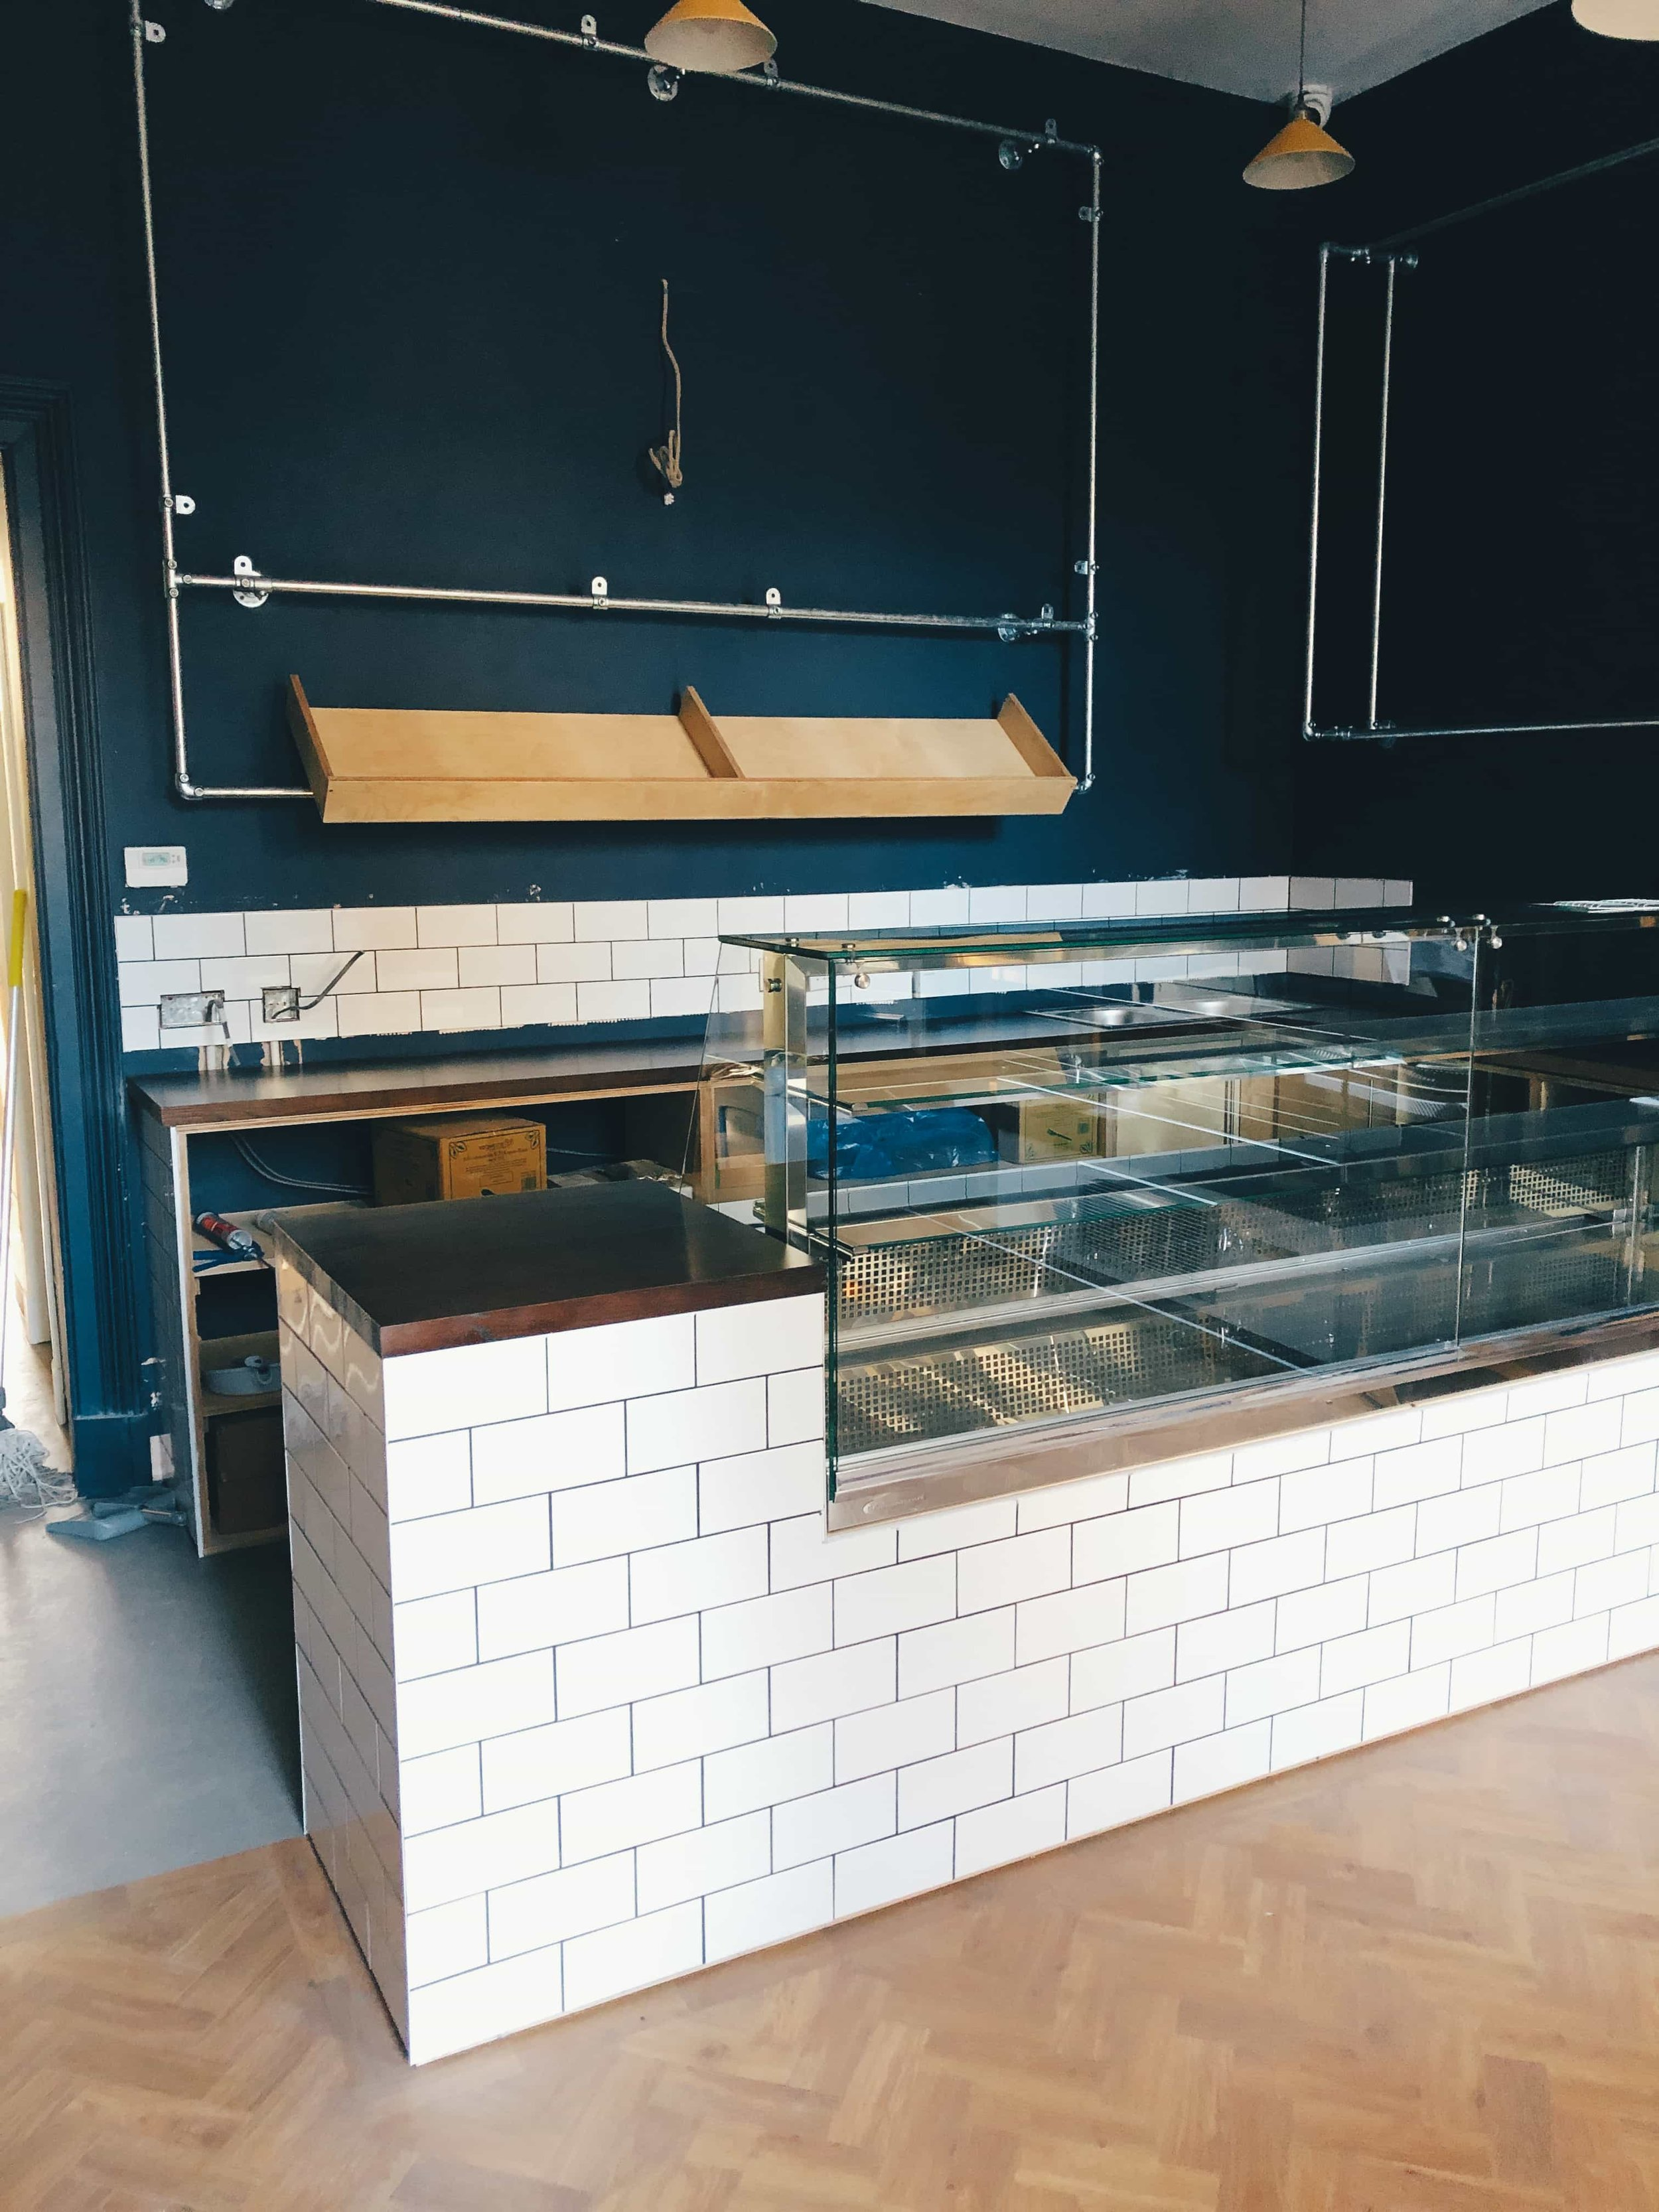 Tayble Deli Dundee Counter Unit and Bespoke Chalkboard and Bread Shelf